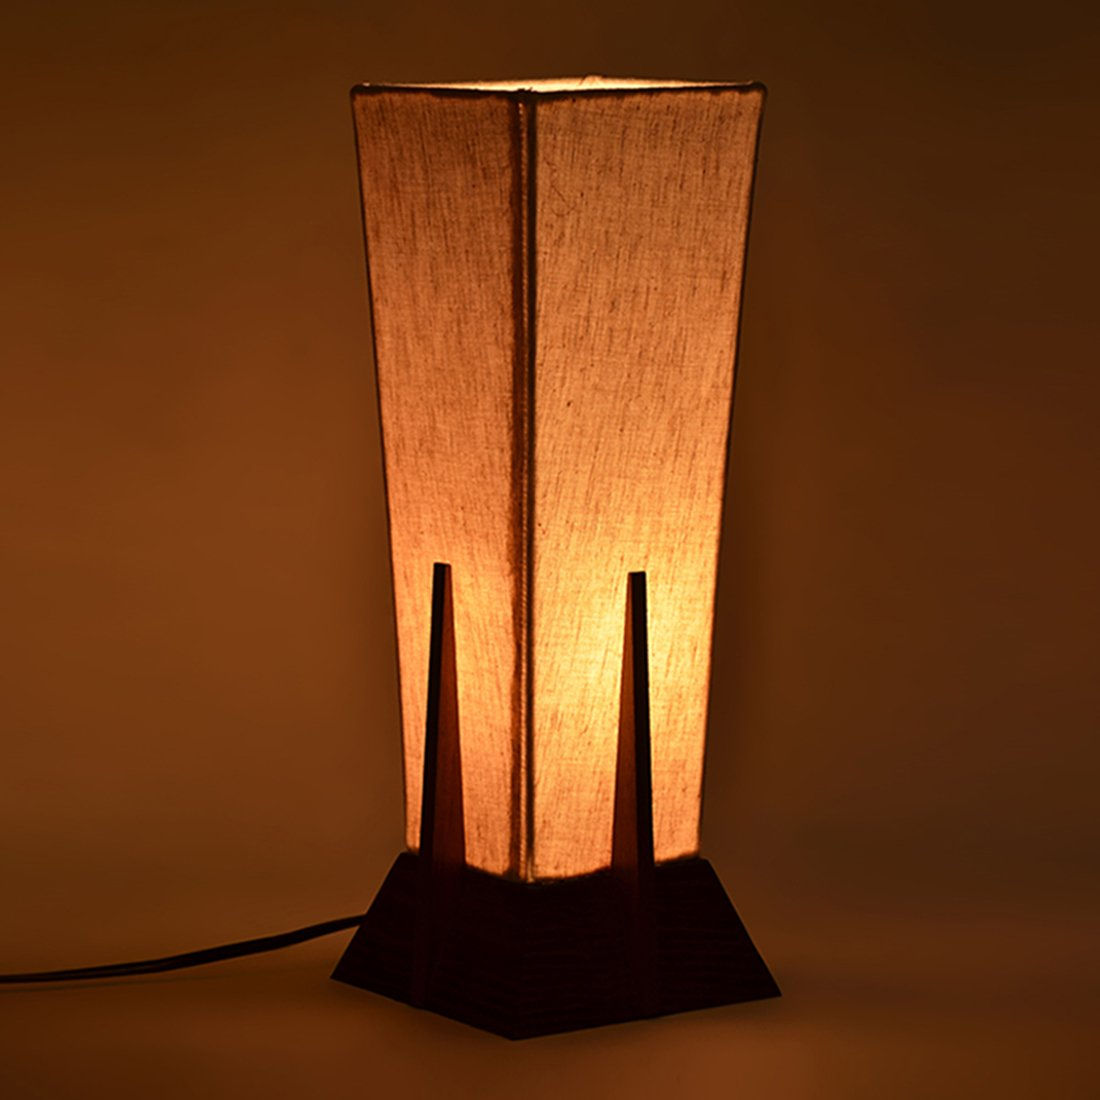 Decorative Table Lamps For Living Room Mydealforme